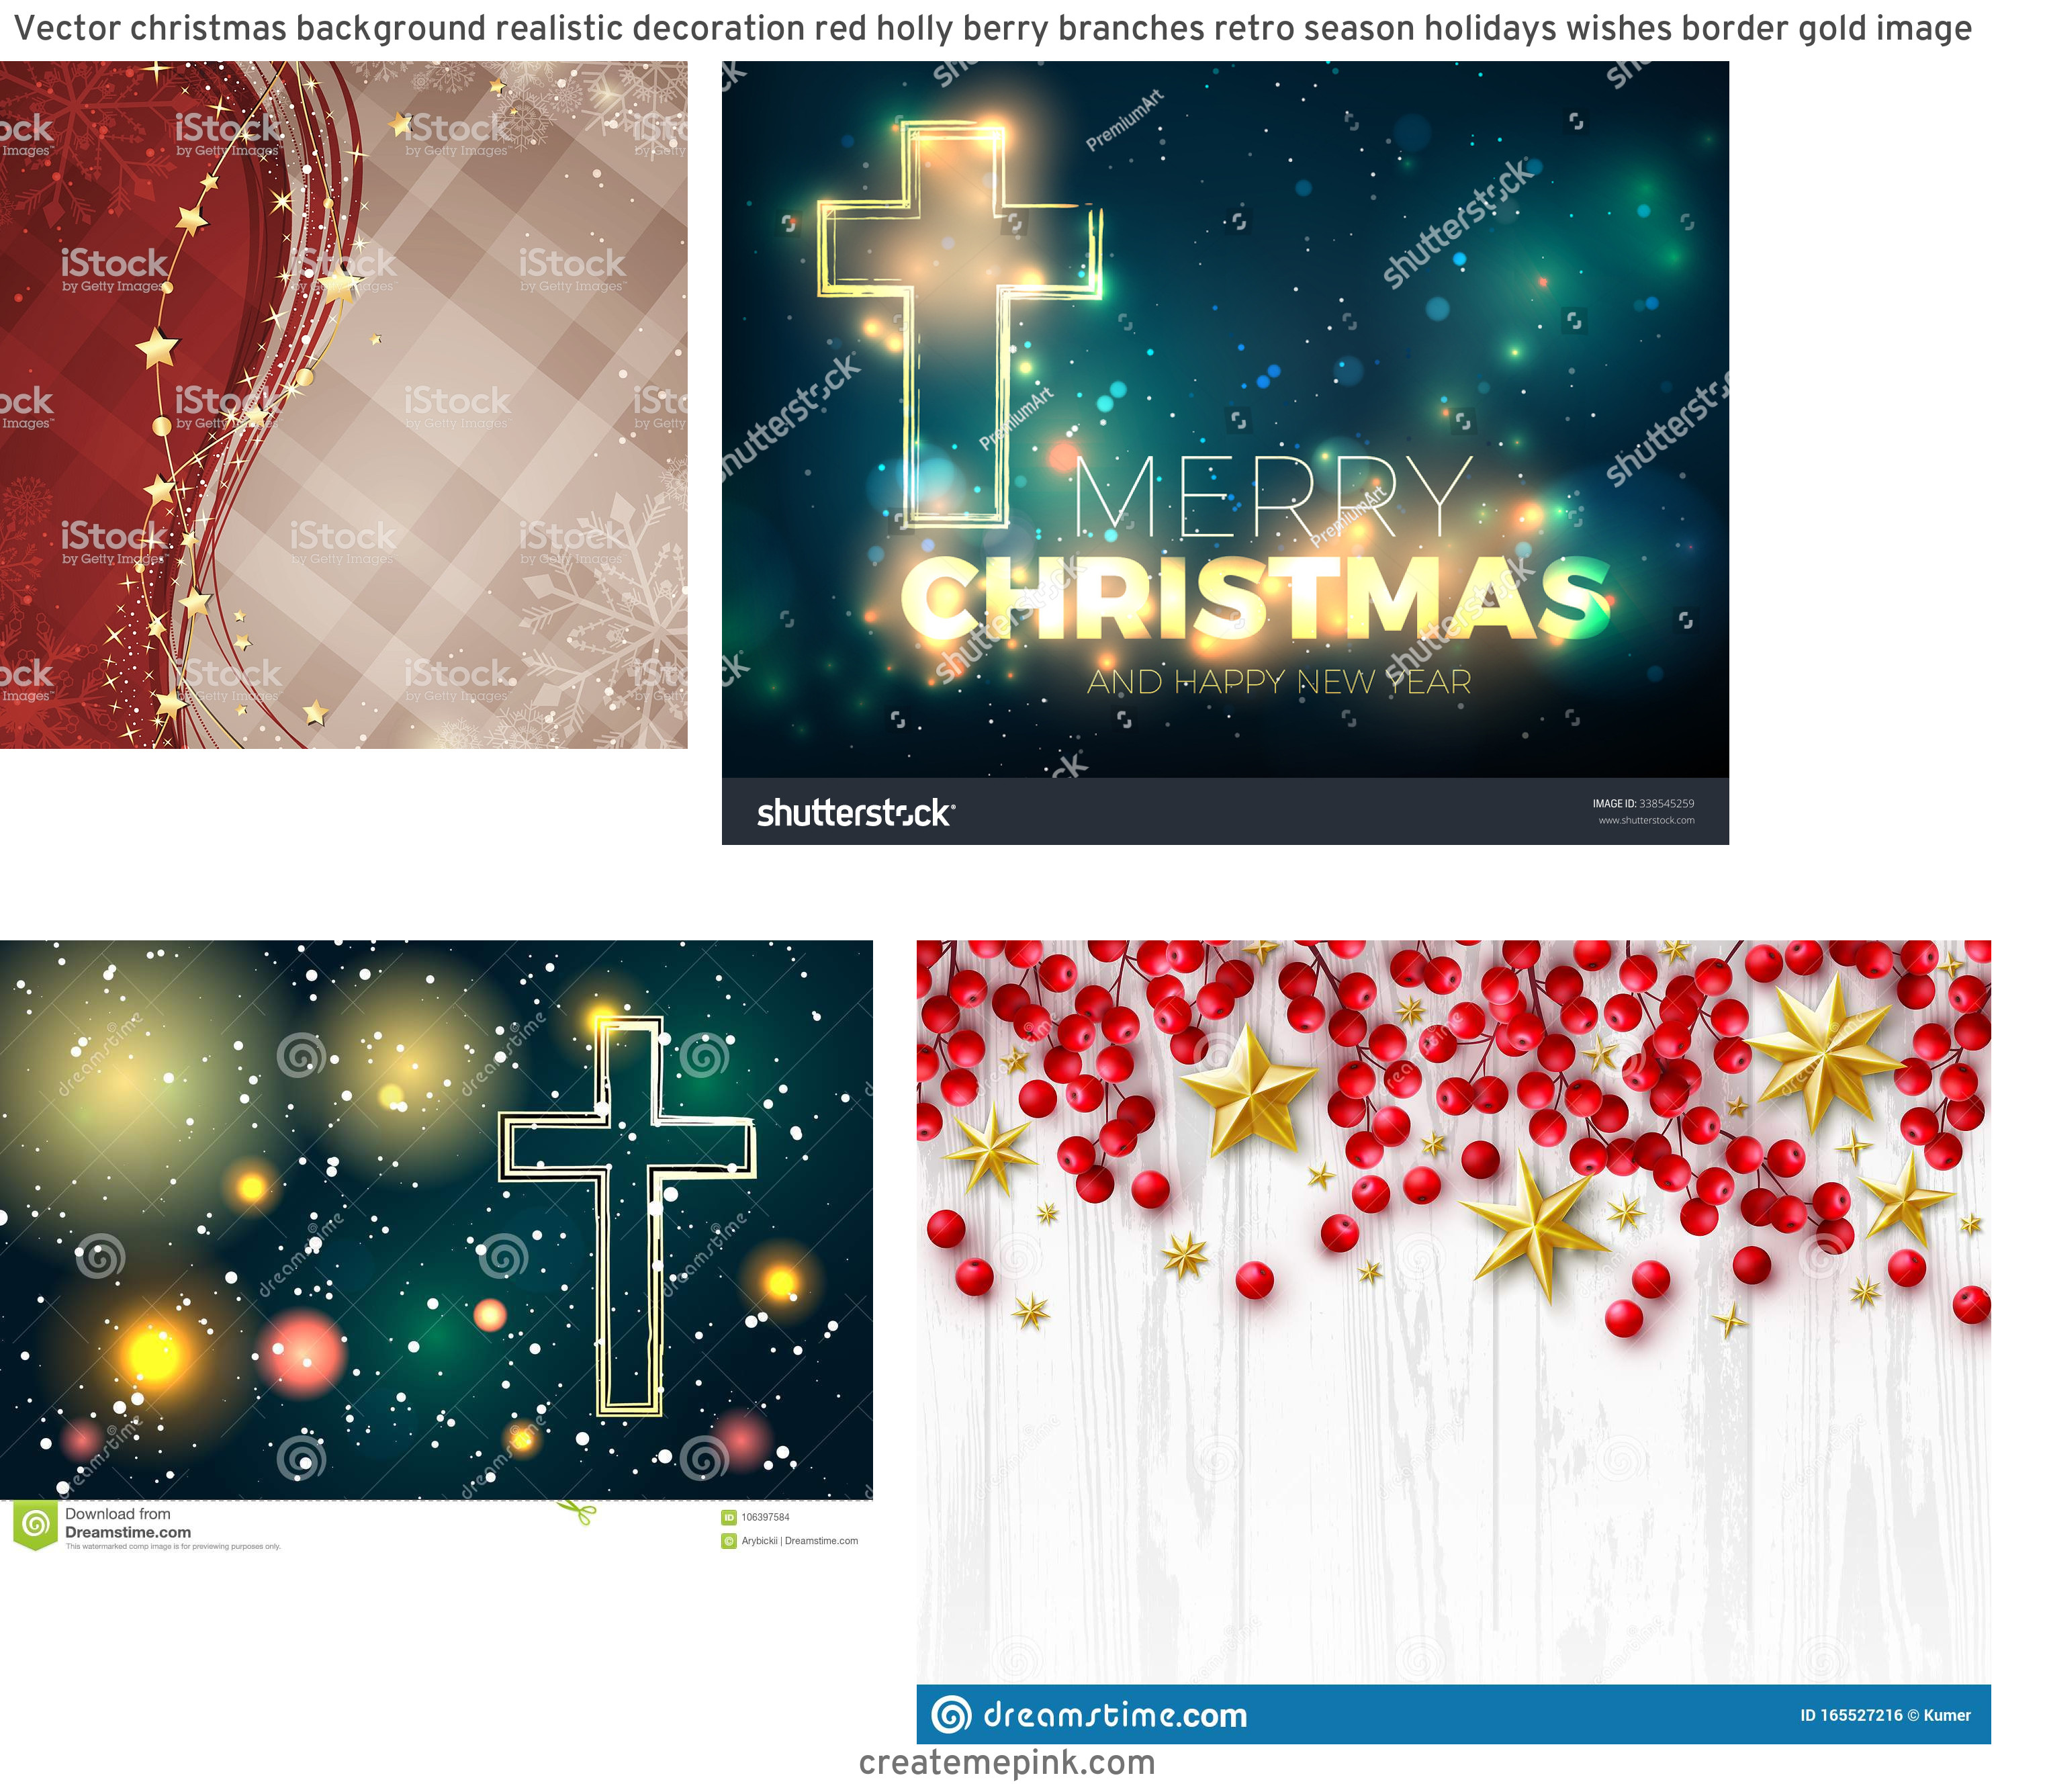 Vector Christmas Background Cross: Vector Christmas Background Realistic Decoration Red Holly Berry Branches Retro Season Holidays Wishes Border Gold Image